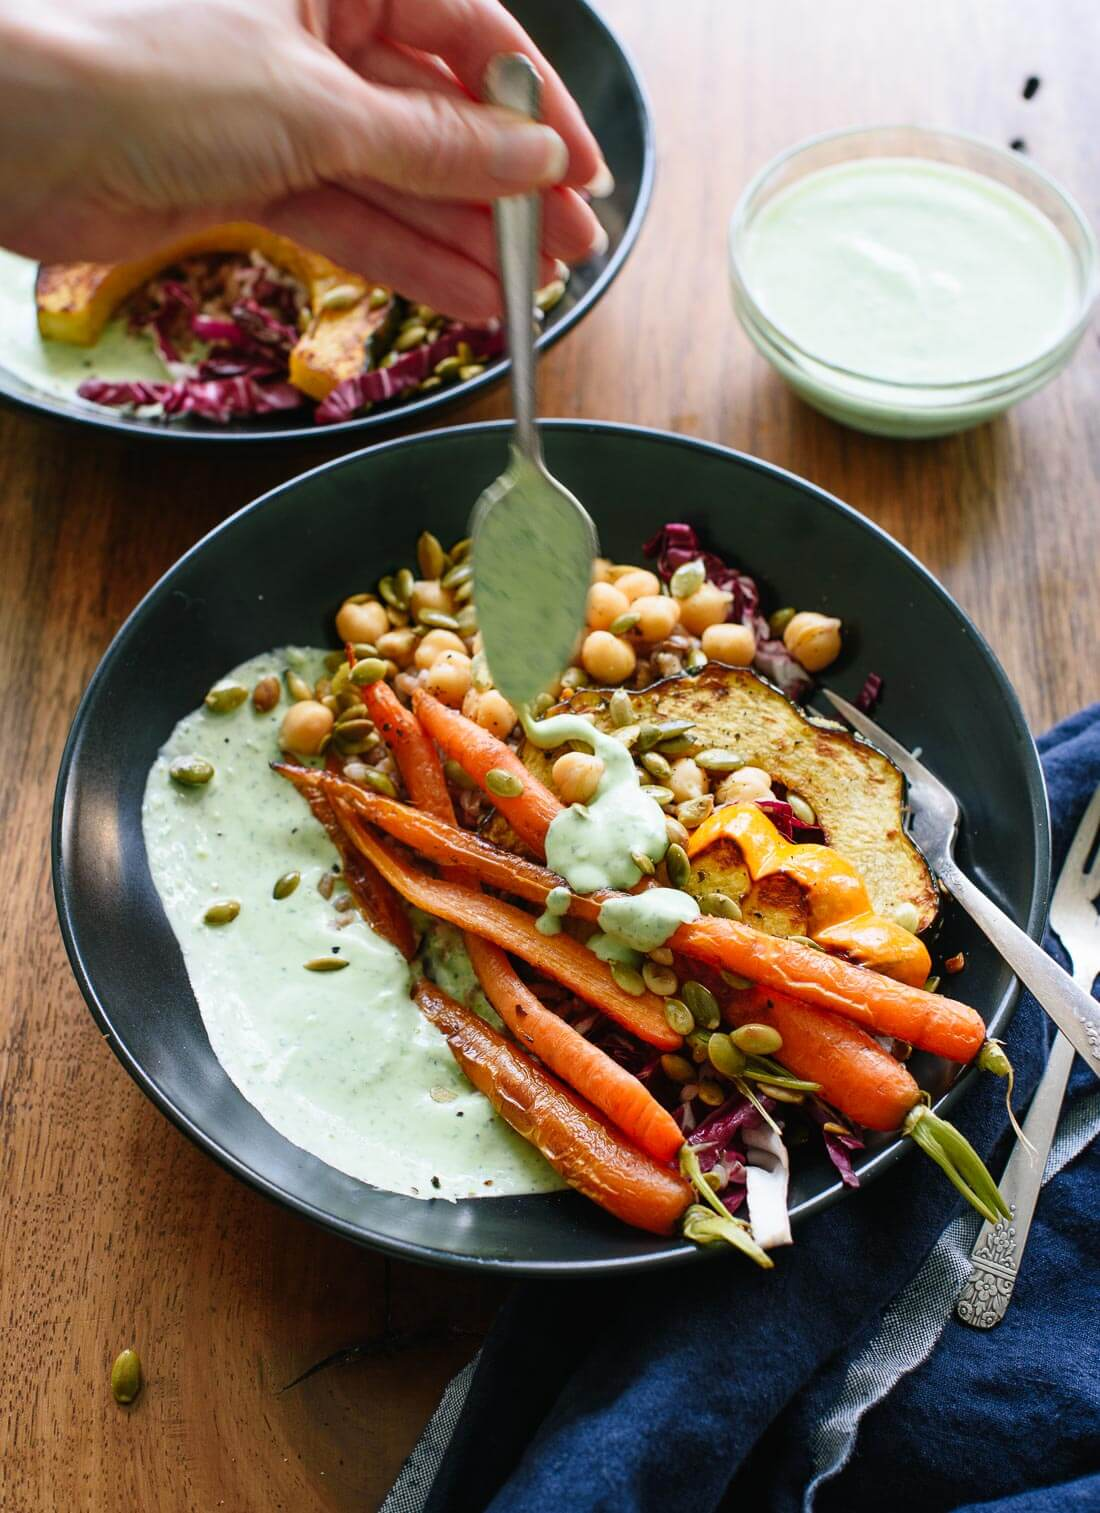 Green goddess yogurt sauce on roasted veggies and whole grains